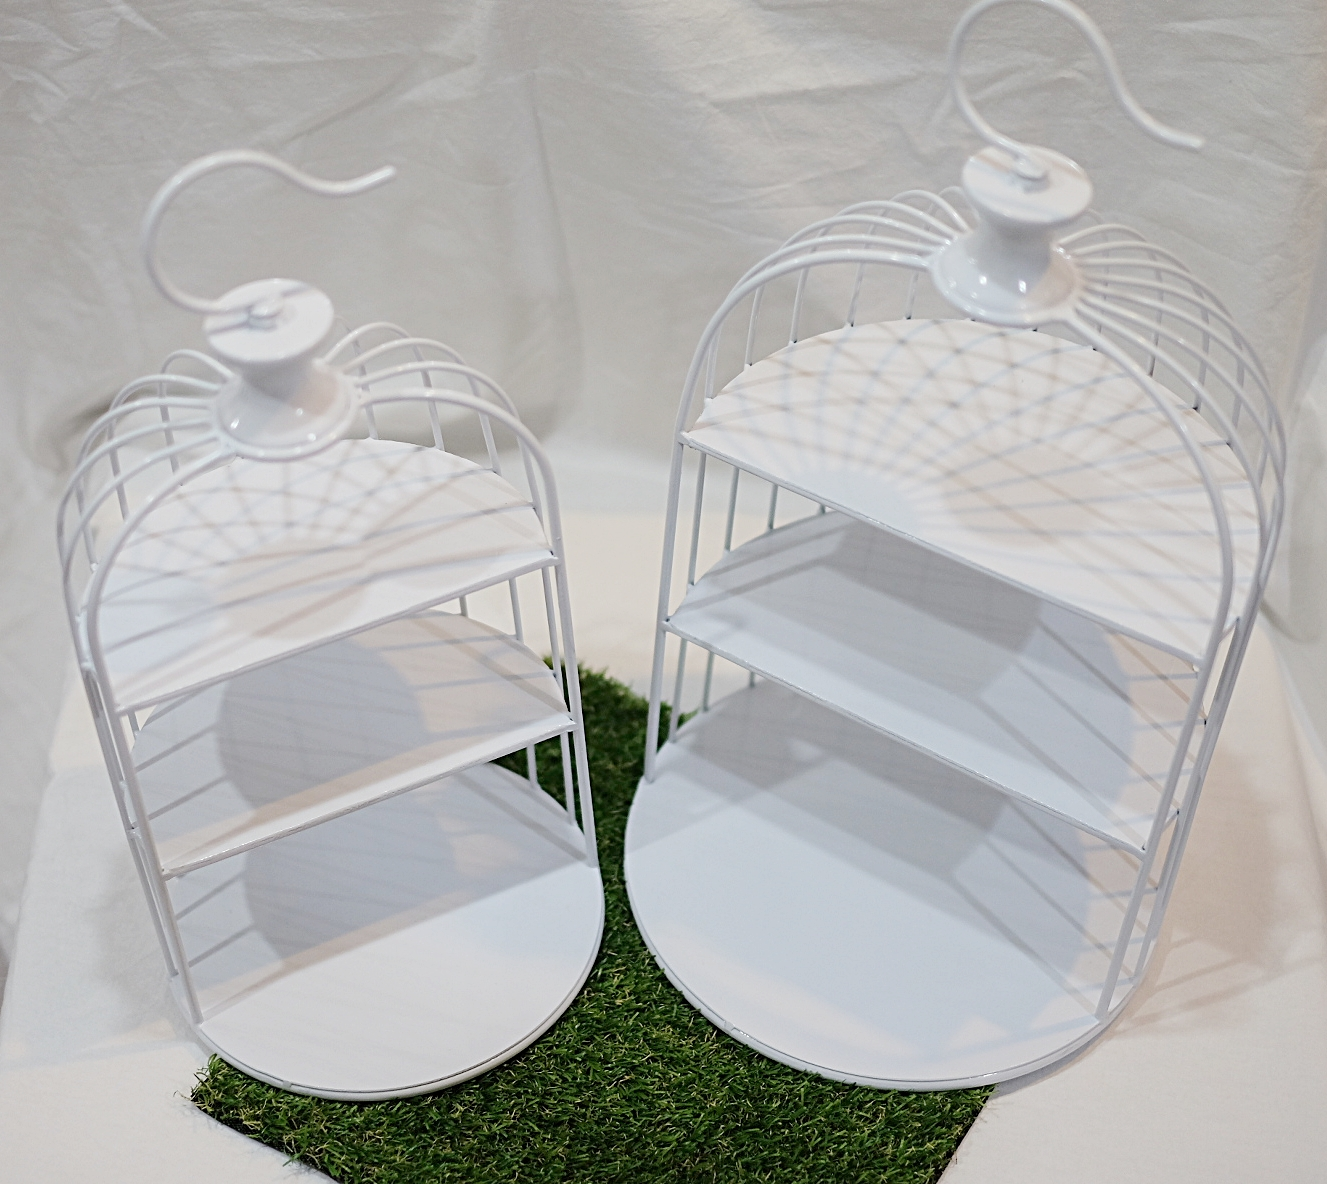 BIG CAGE: S$12.00 SMALL CAGE: S$10.00